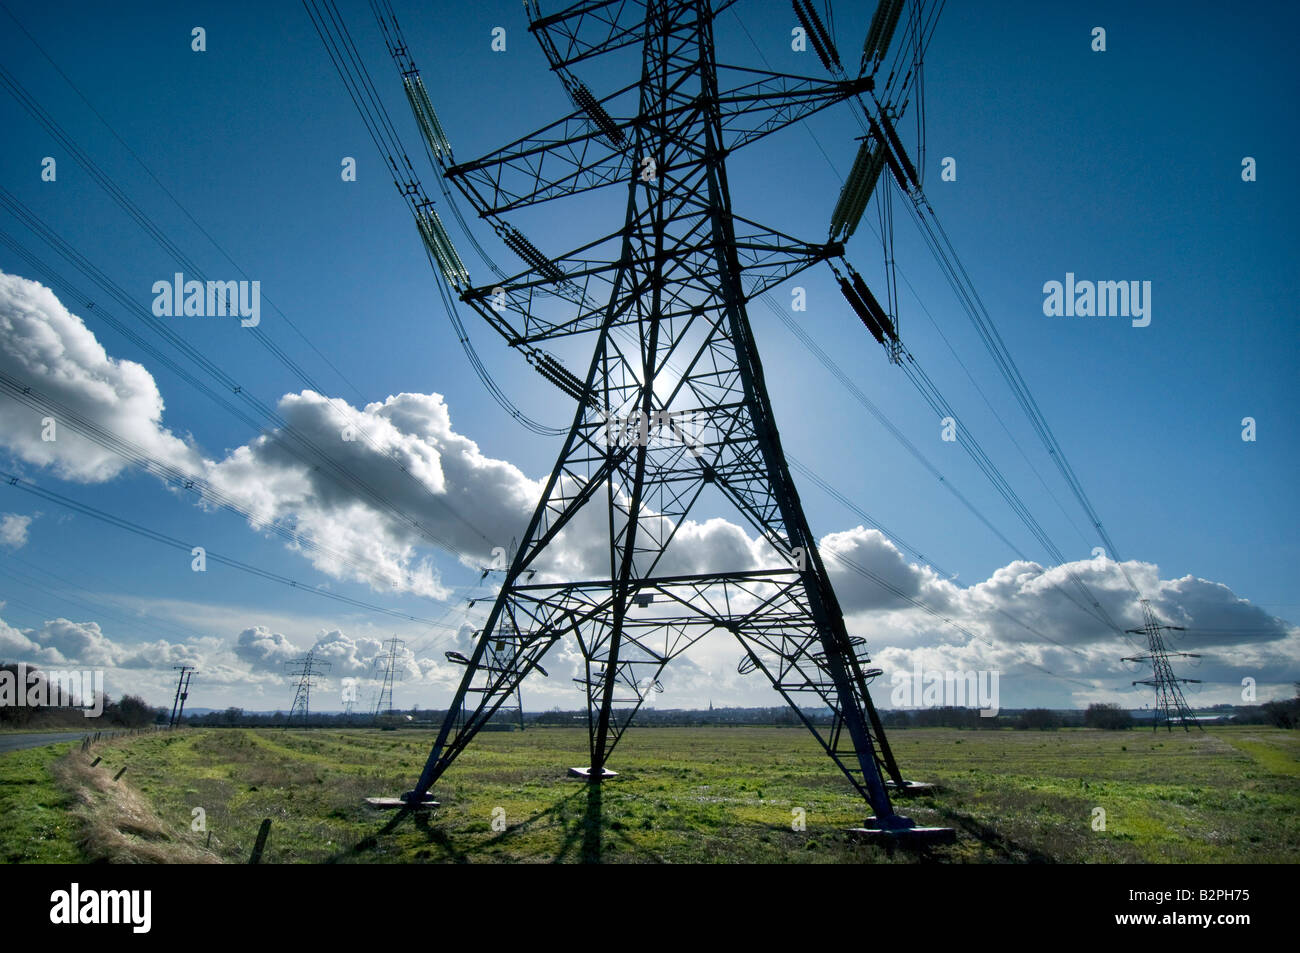 An electricity pylon or tower in the English countryside - Stock Image